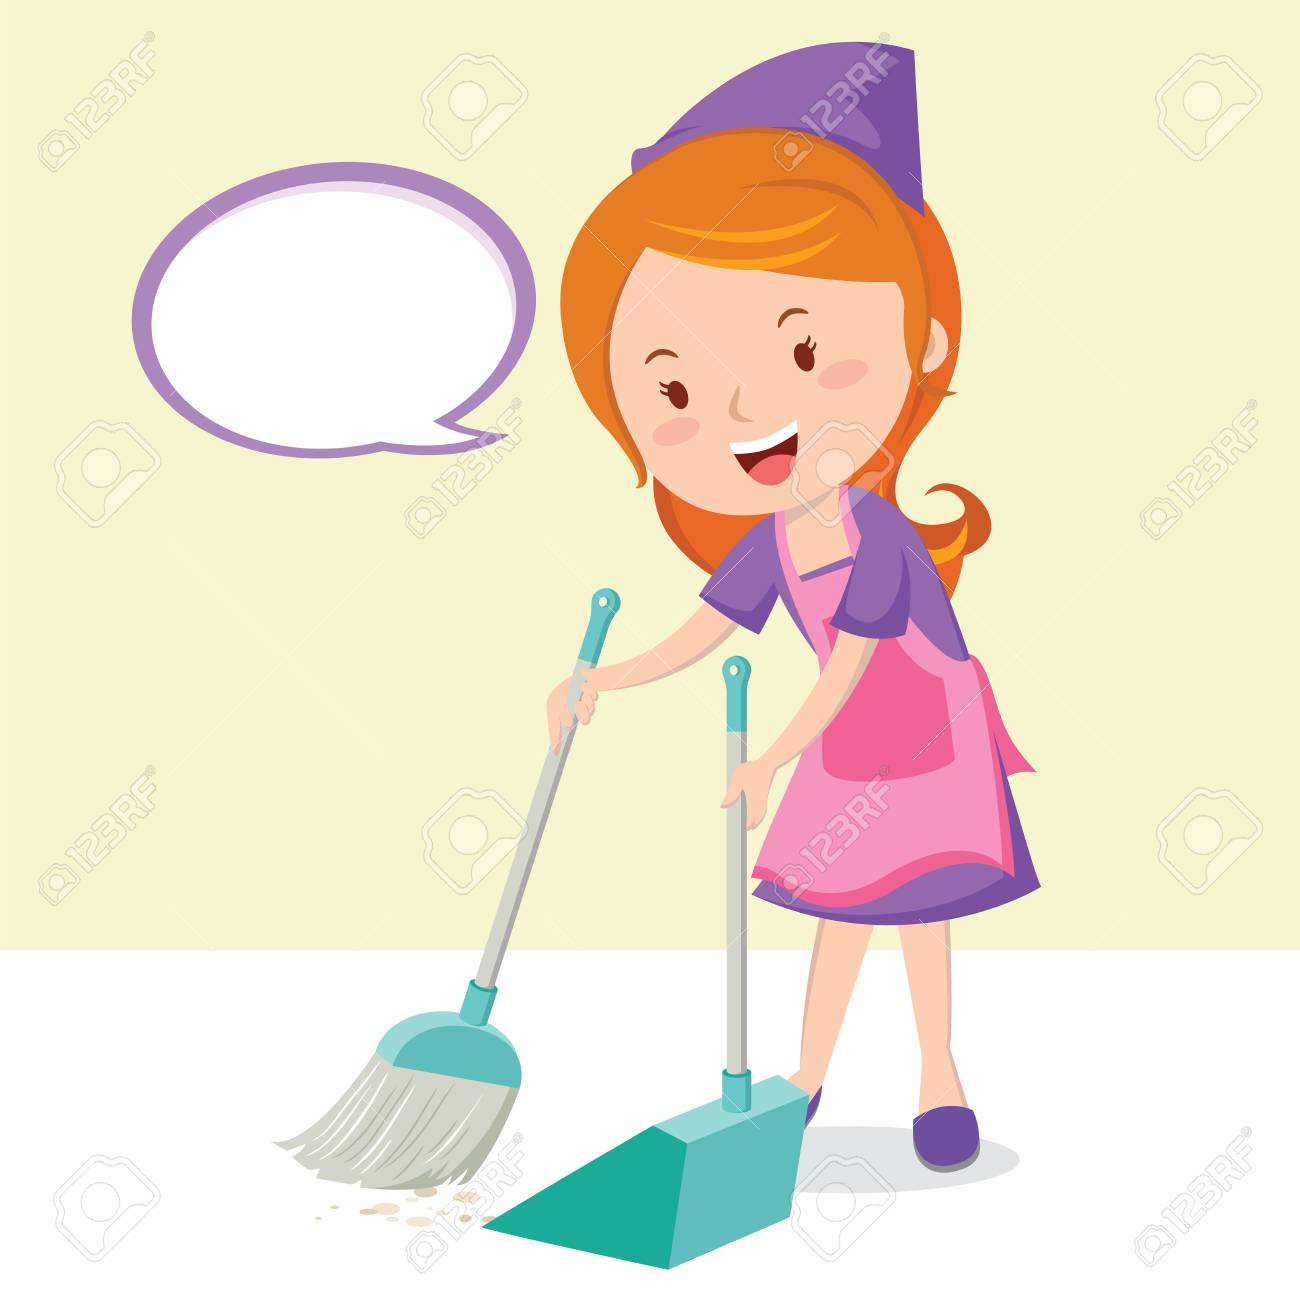 young girl sweeping floor with broom vector illustration royalty free cliparts vectors and stock illustration image 93646318 young girl sweeping floor with broom vector illustration